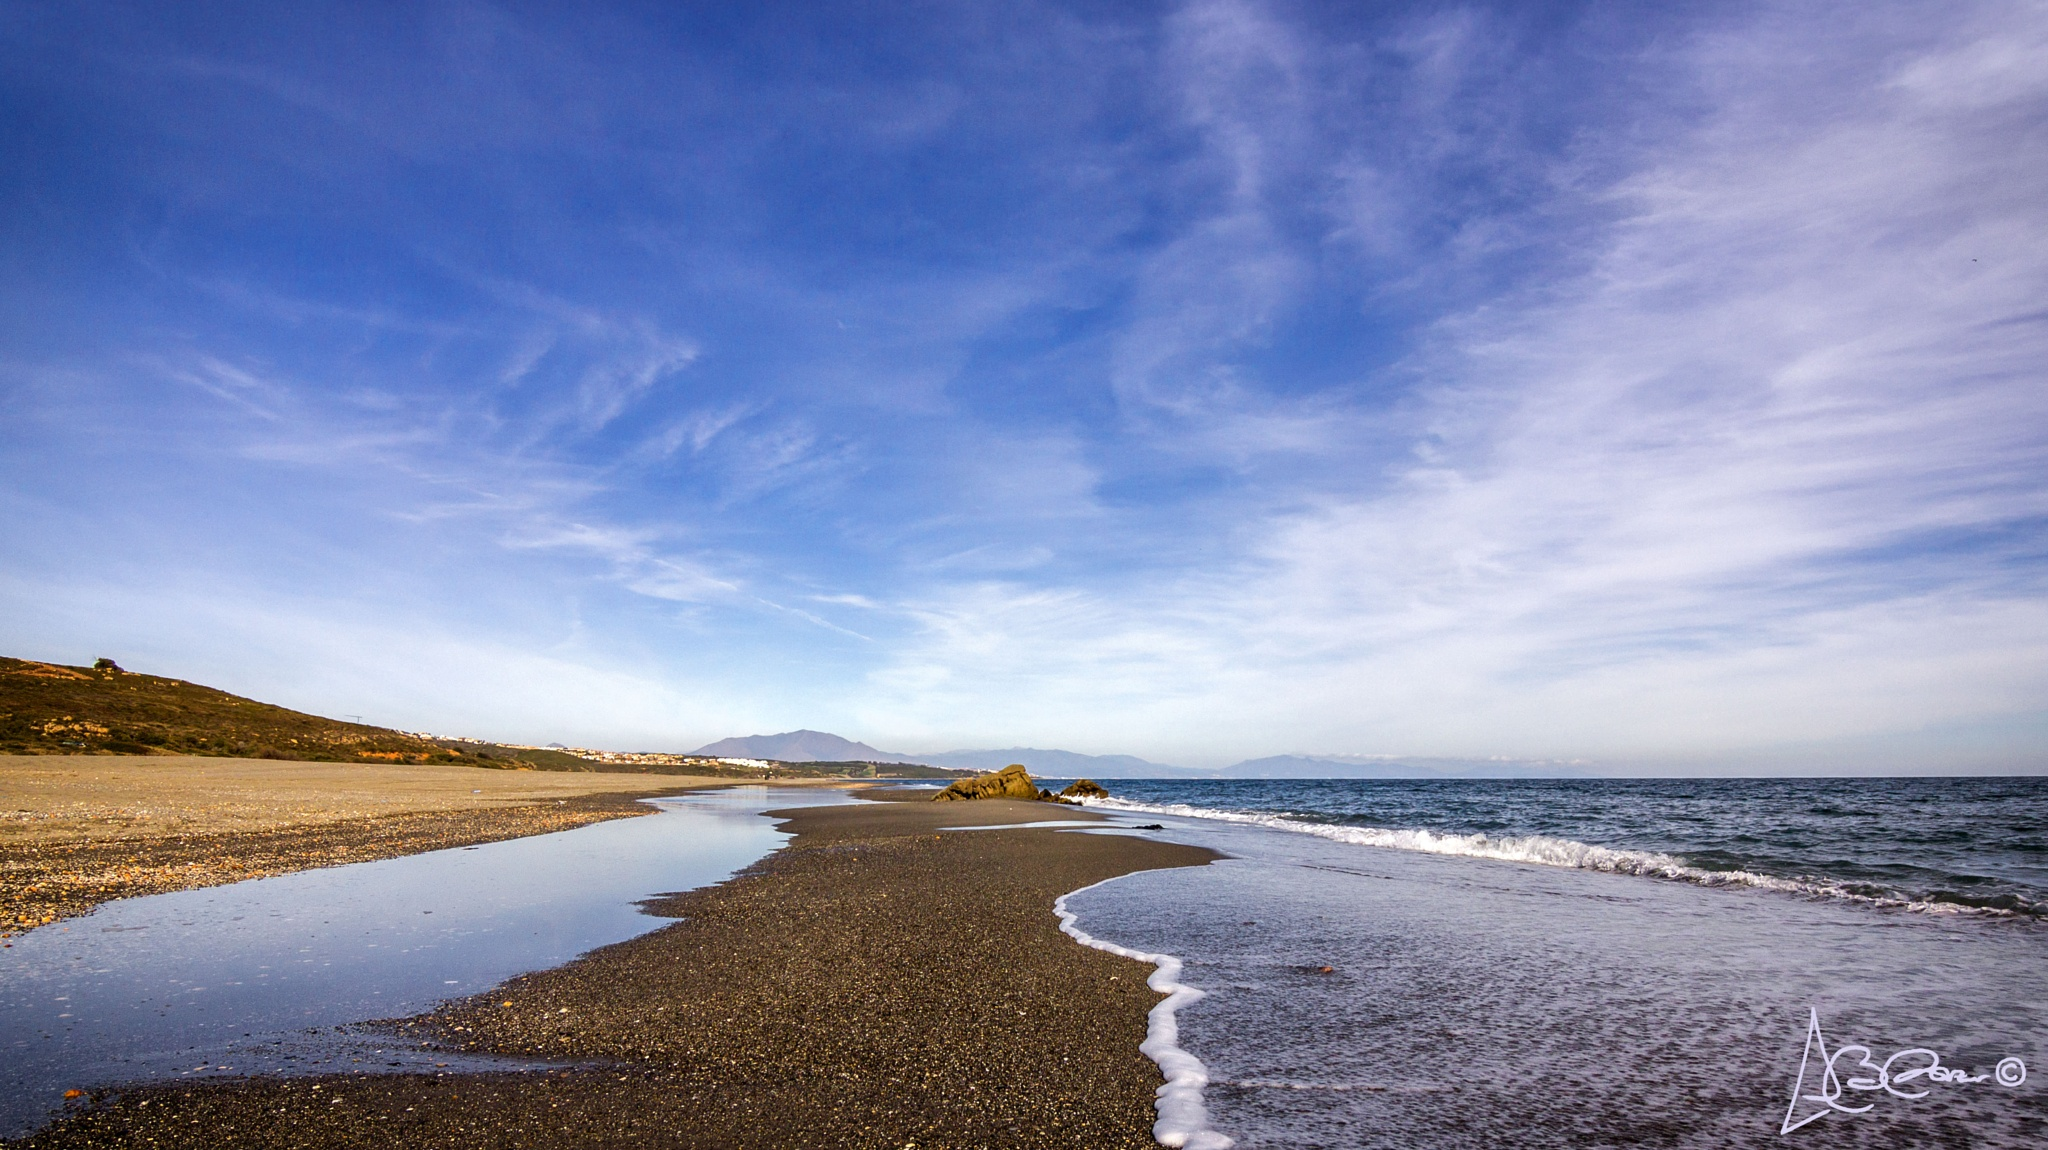 Symmetry between clouds and water (waves) by Antonio Benítez Paz